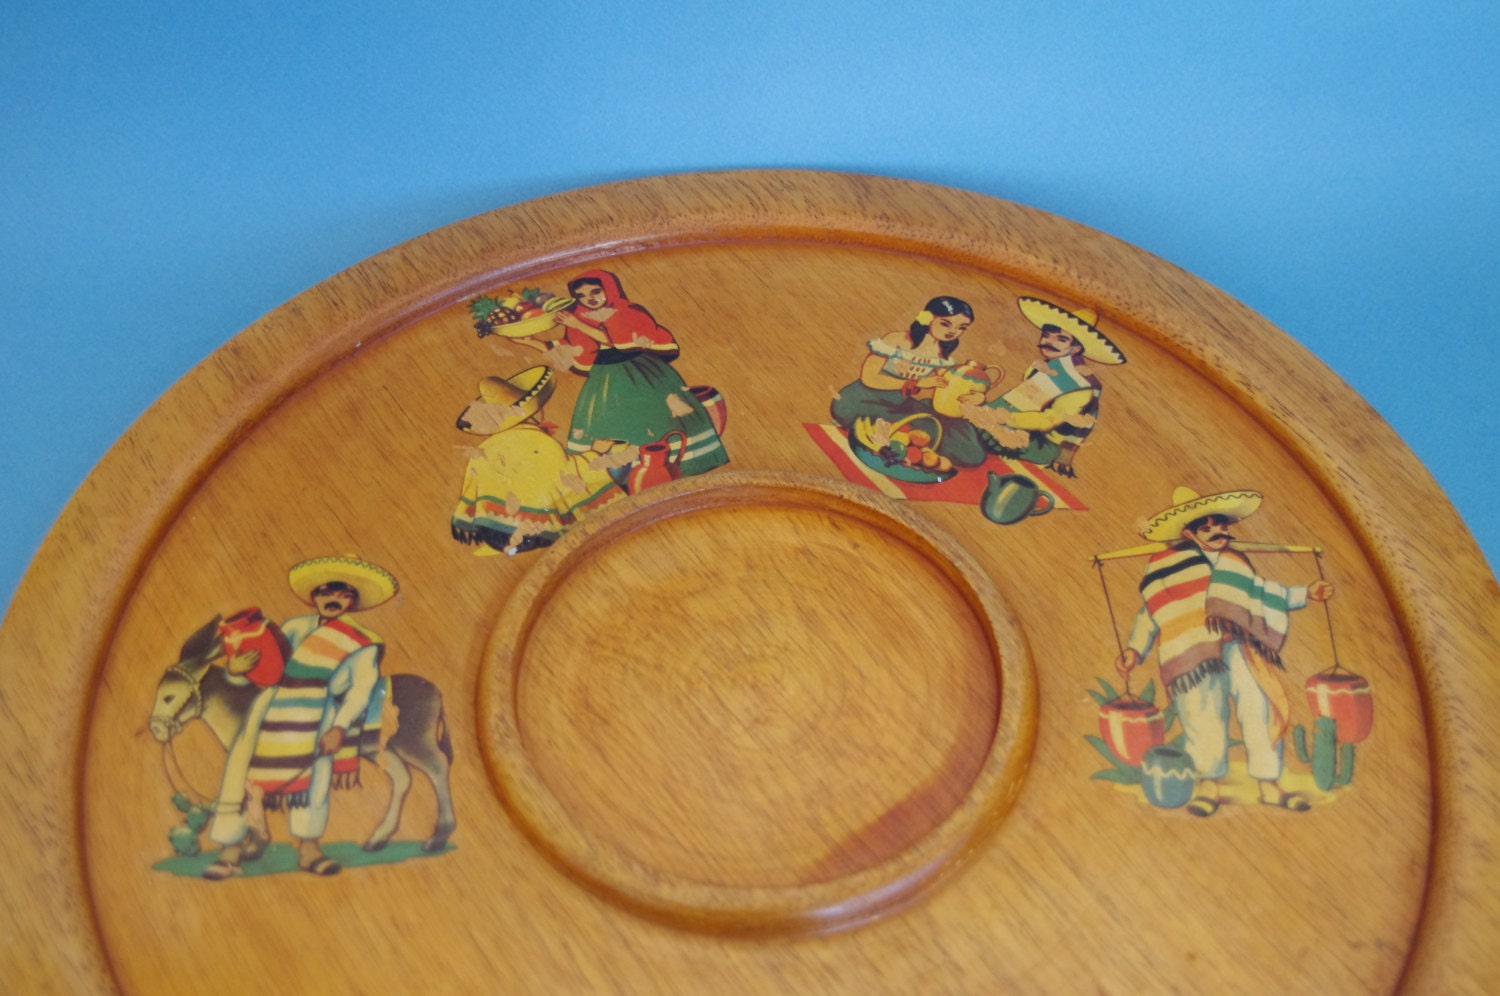 1950s serving tray Mexican decals, wooden platter for dips